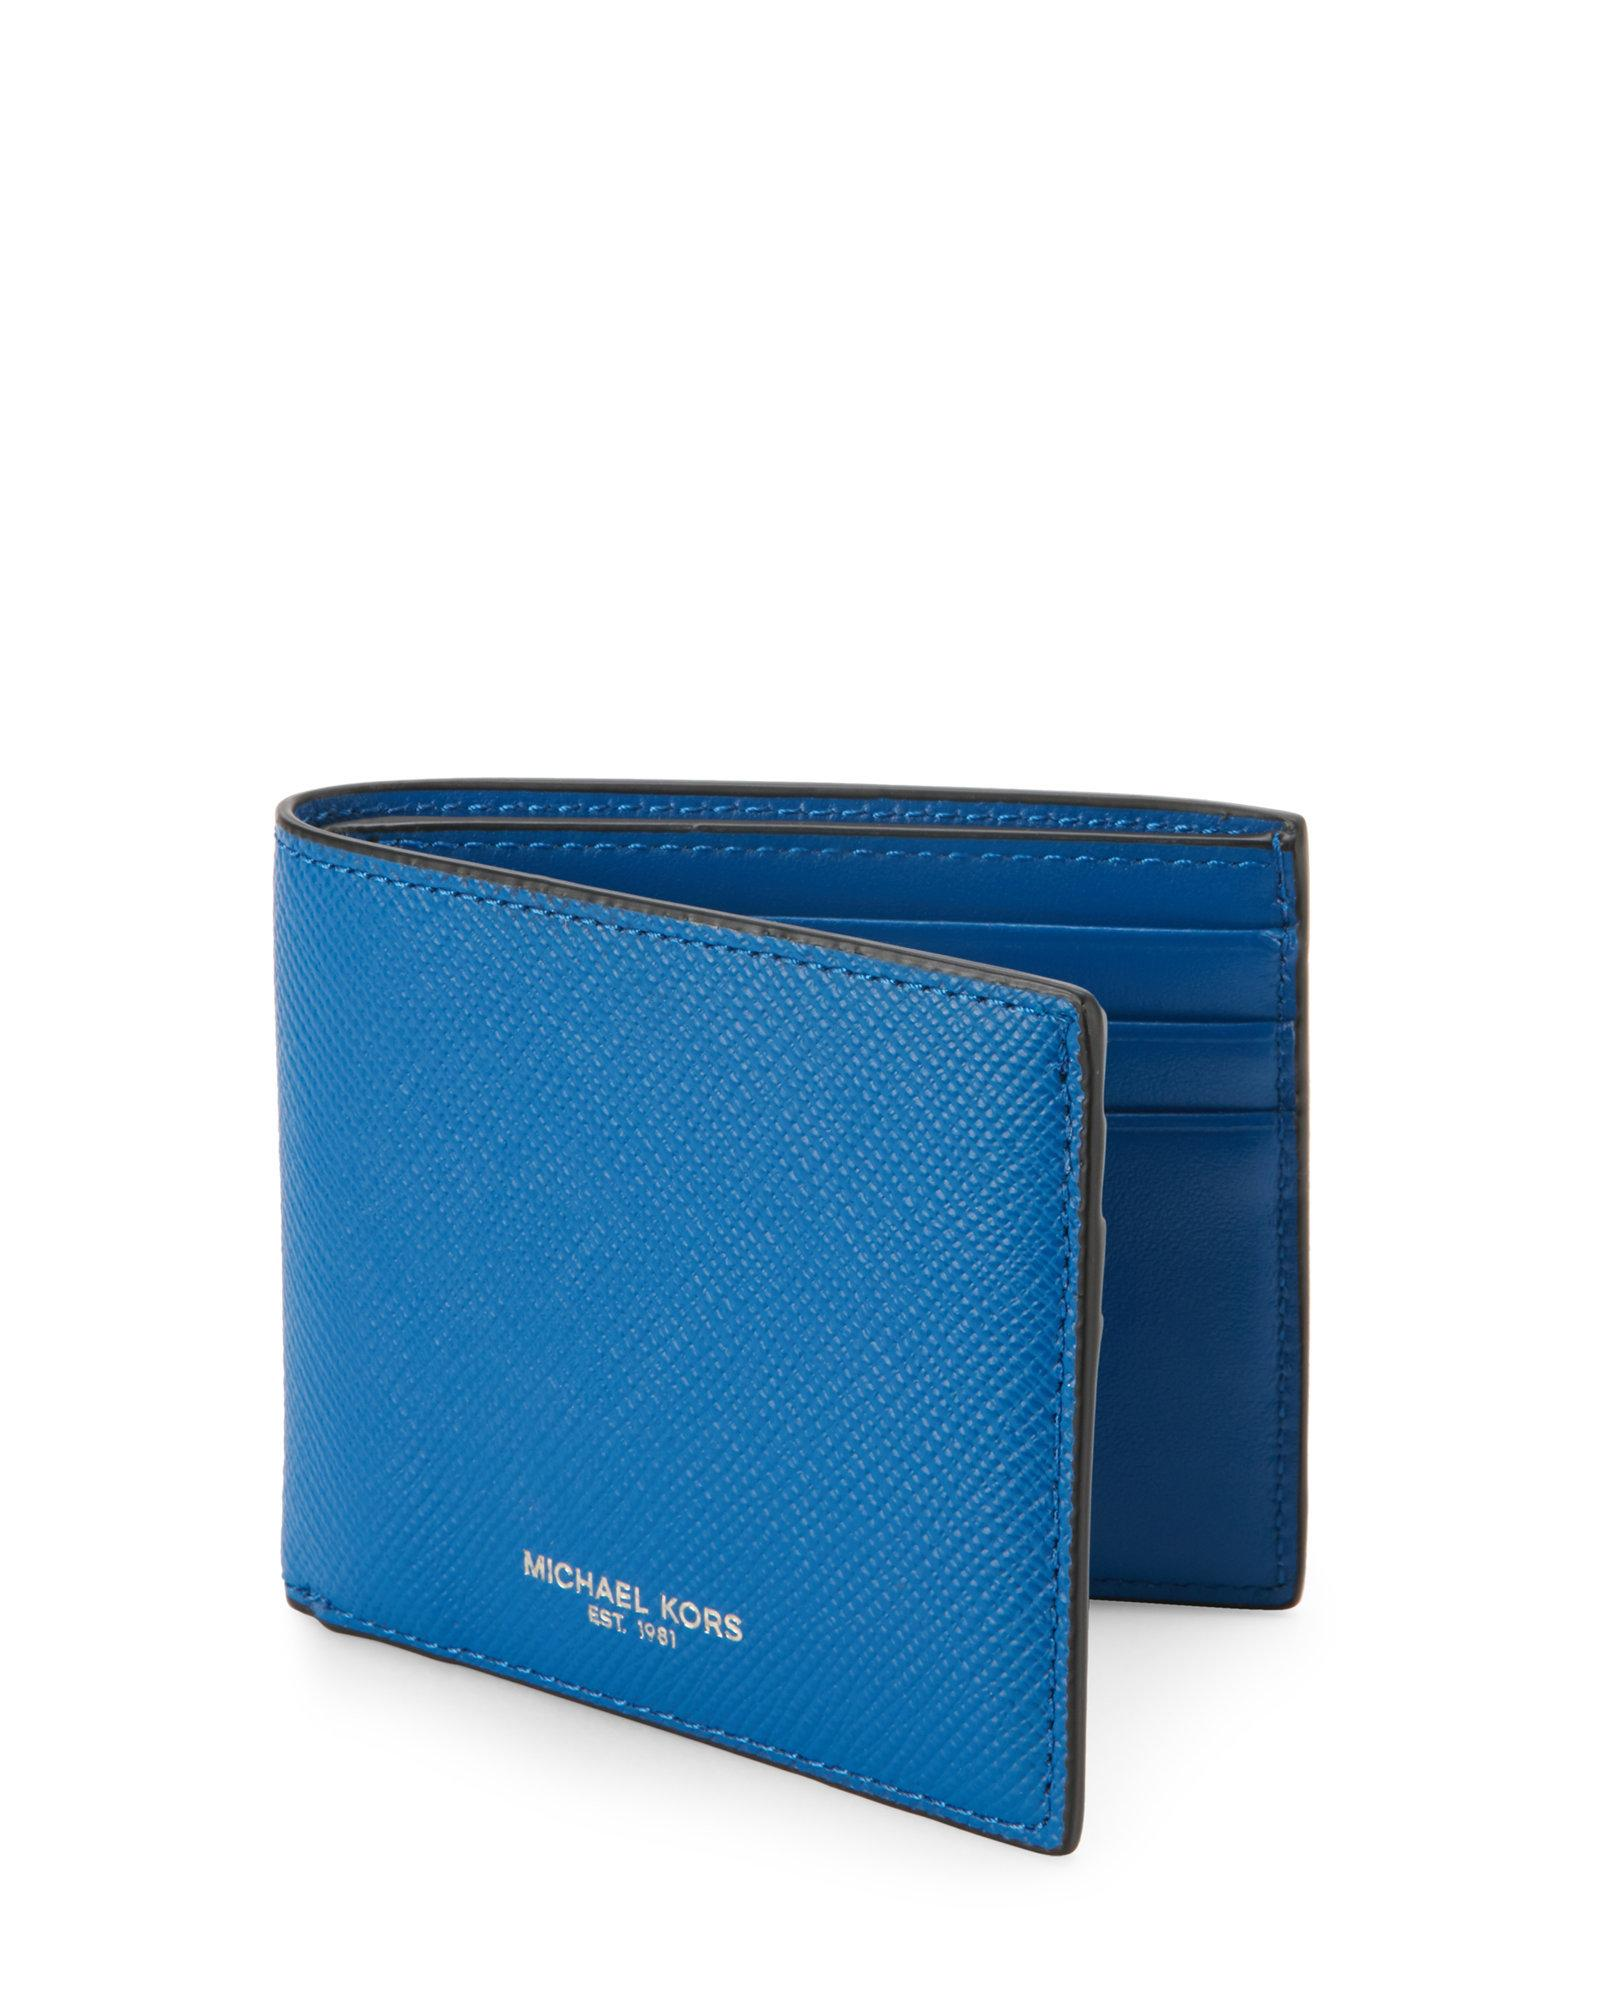 f39cca547efb denmark blue michael kors mens wallet 83c3e 4a521  coupon for lyst michael  kors electric blue harrison leather billfold wallet 86559 00dd3